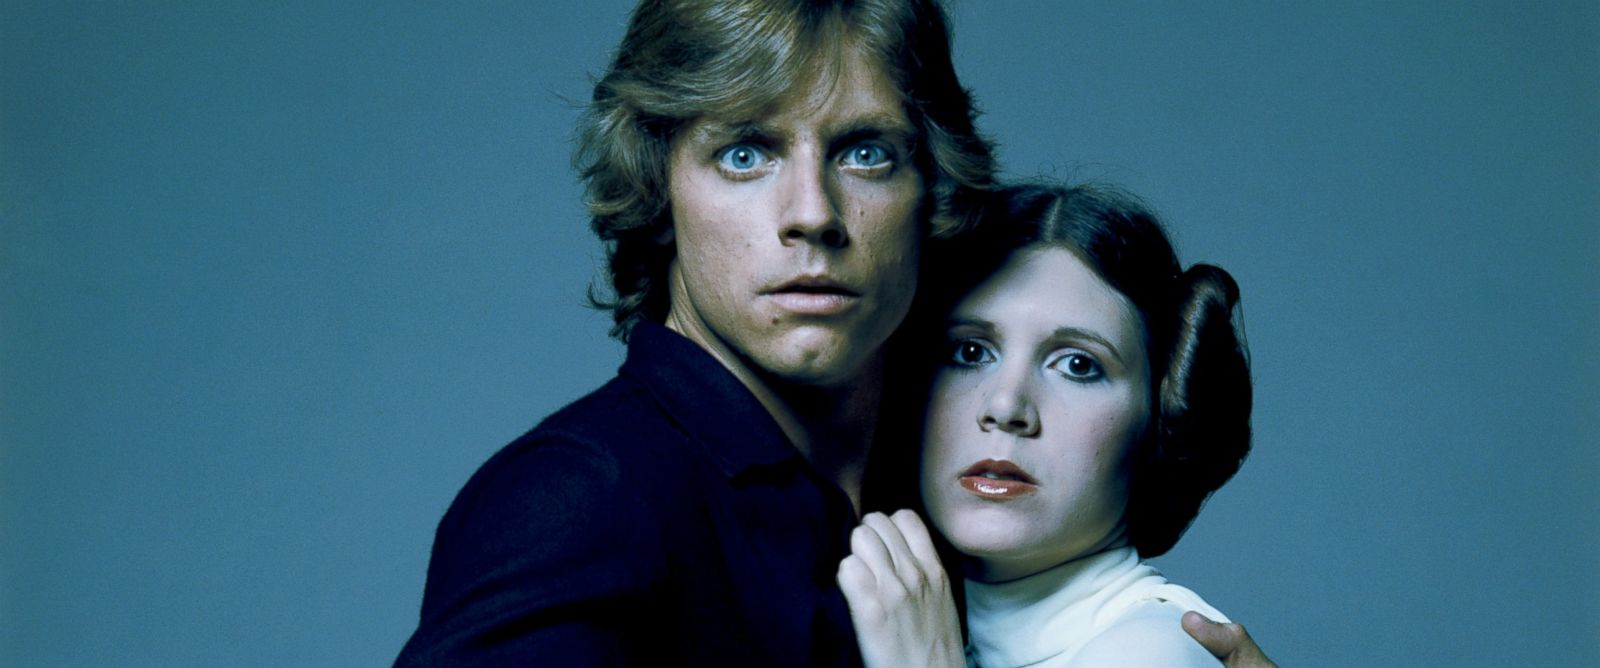 PHOTO: American actors Mark Hamill and Carrie Fisher in costume as ...